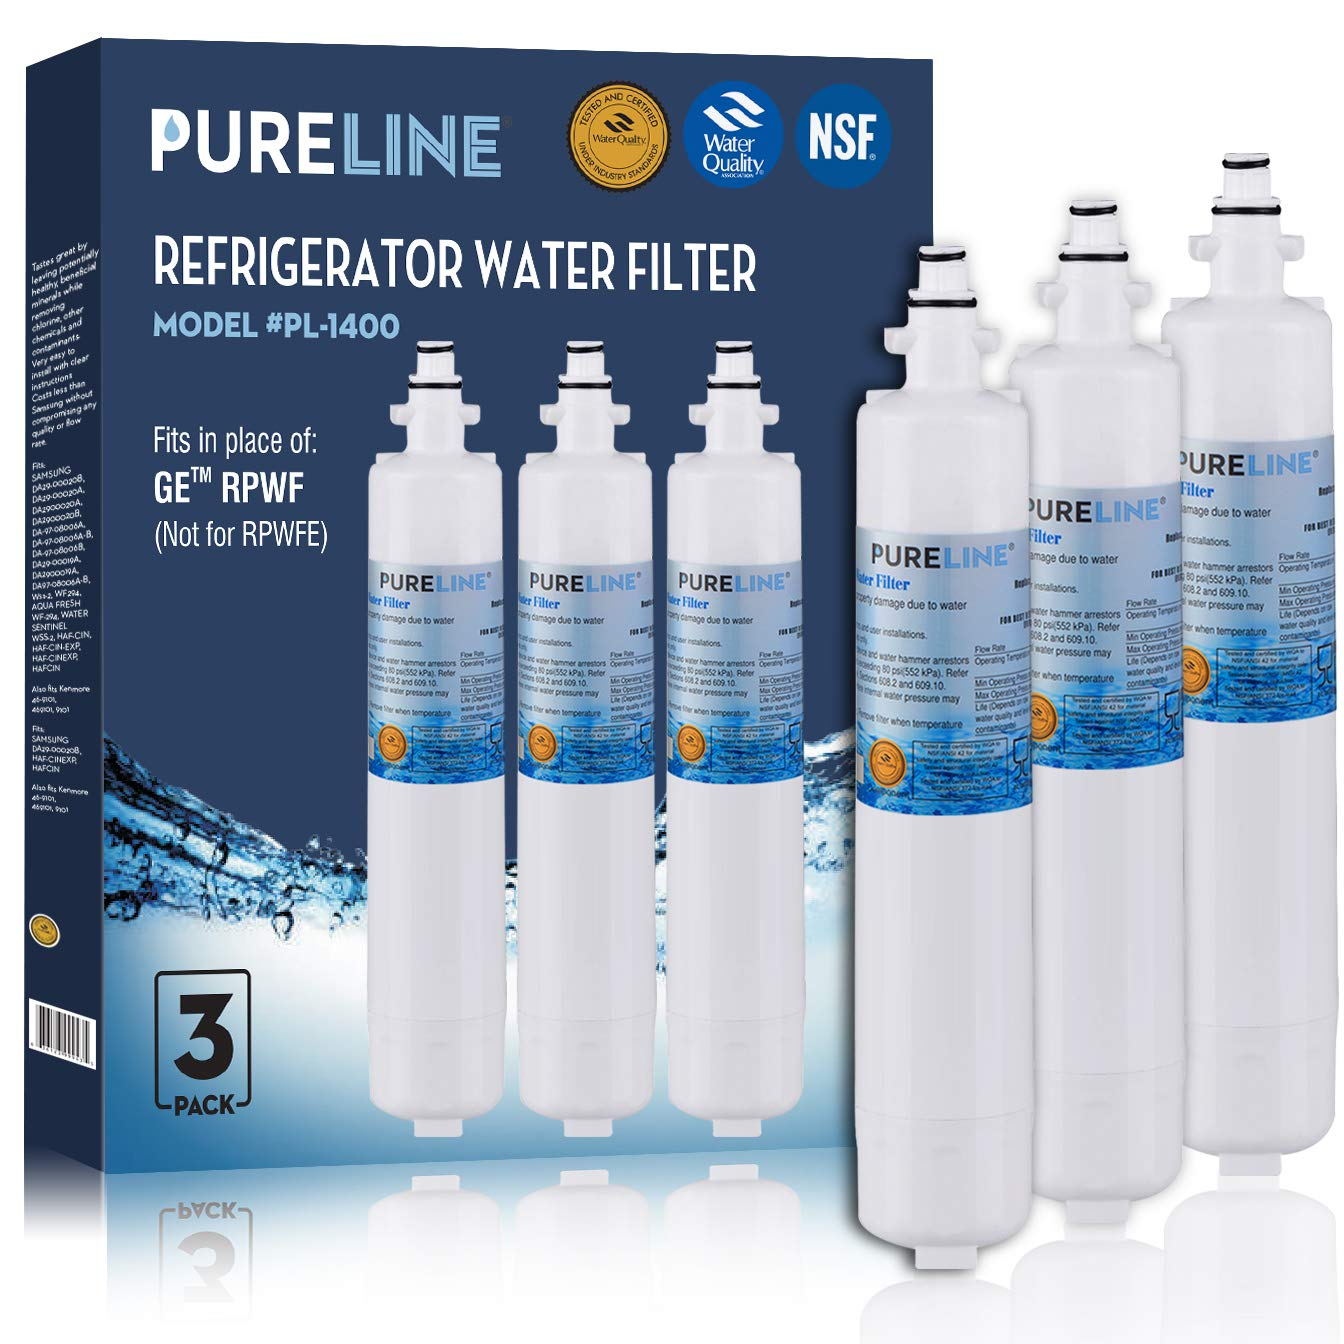 GE RPWF (Not RPWFE) Fast Flow Compatible Water Filter Replacement For GE RPWF (Not Compatible With RPWFE) WSG-4 Refrigerator Water Filter By Pure Line (1 PACK)